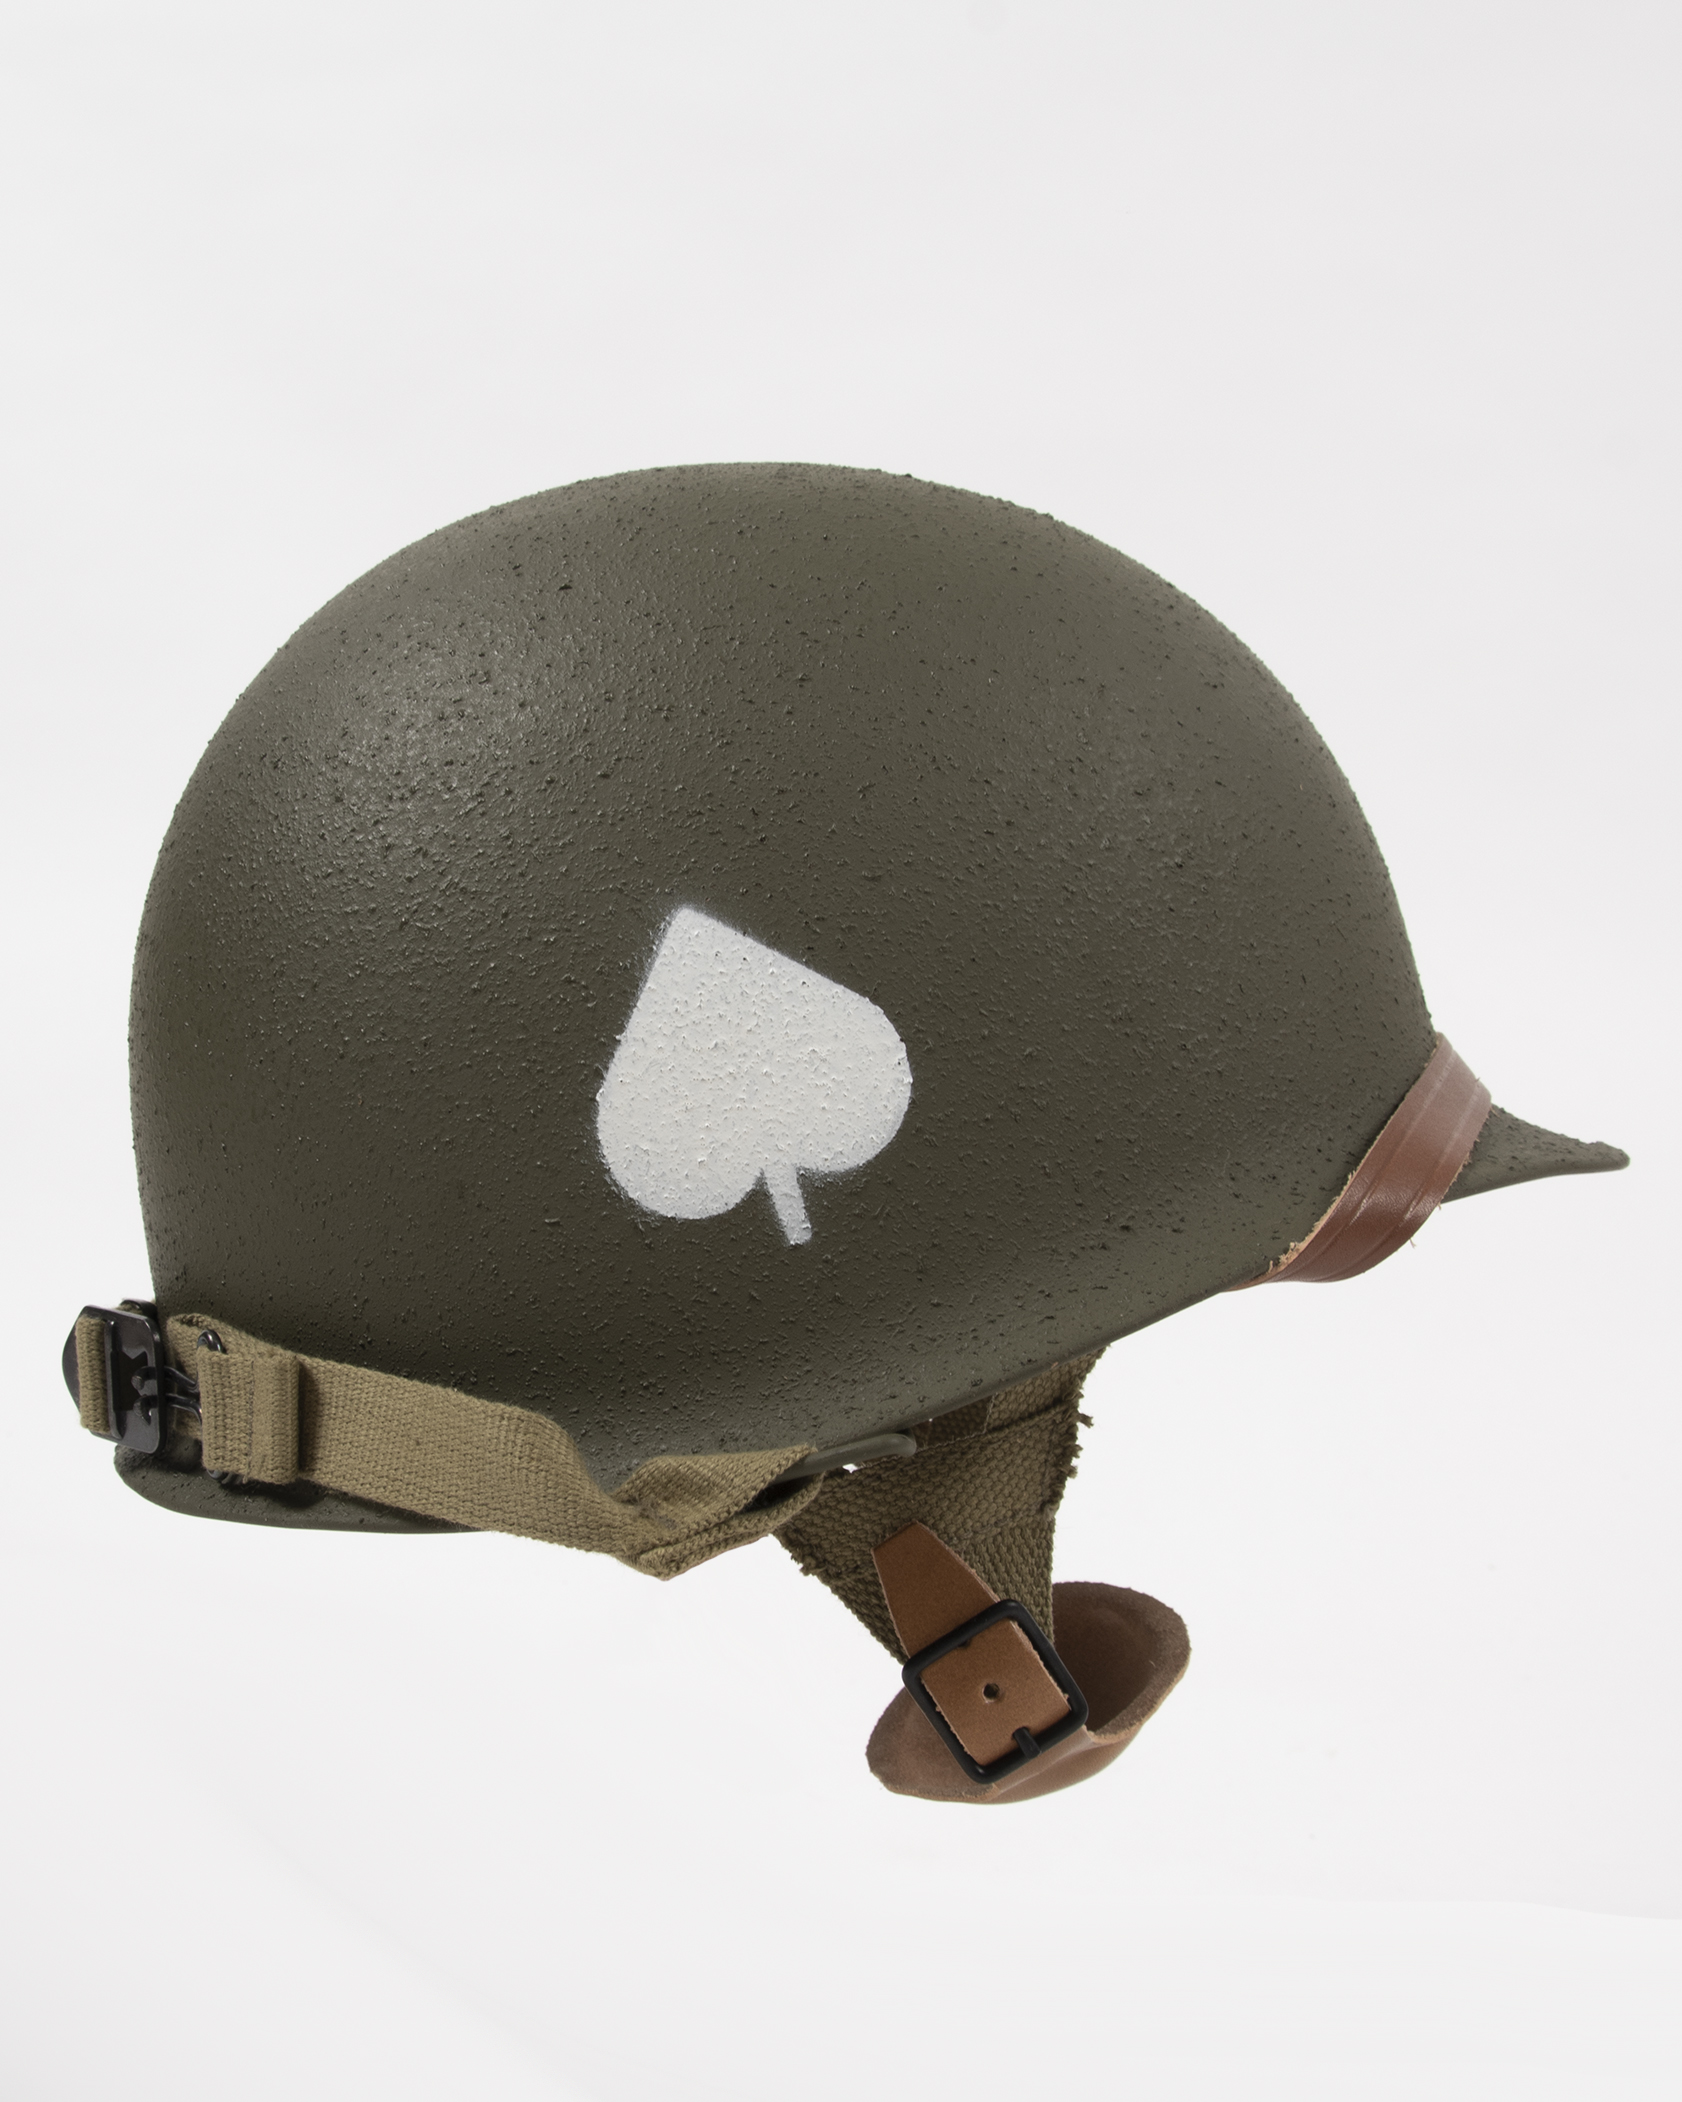 US WWII 506th Paratrooper Helmet, made in USA